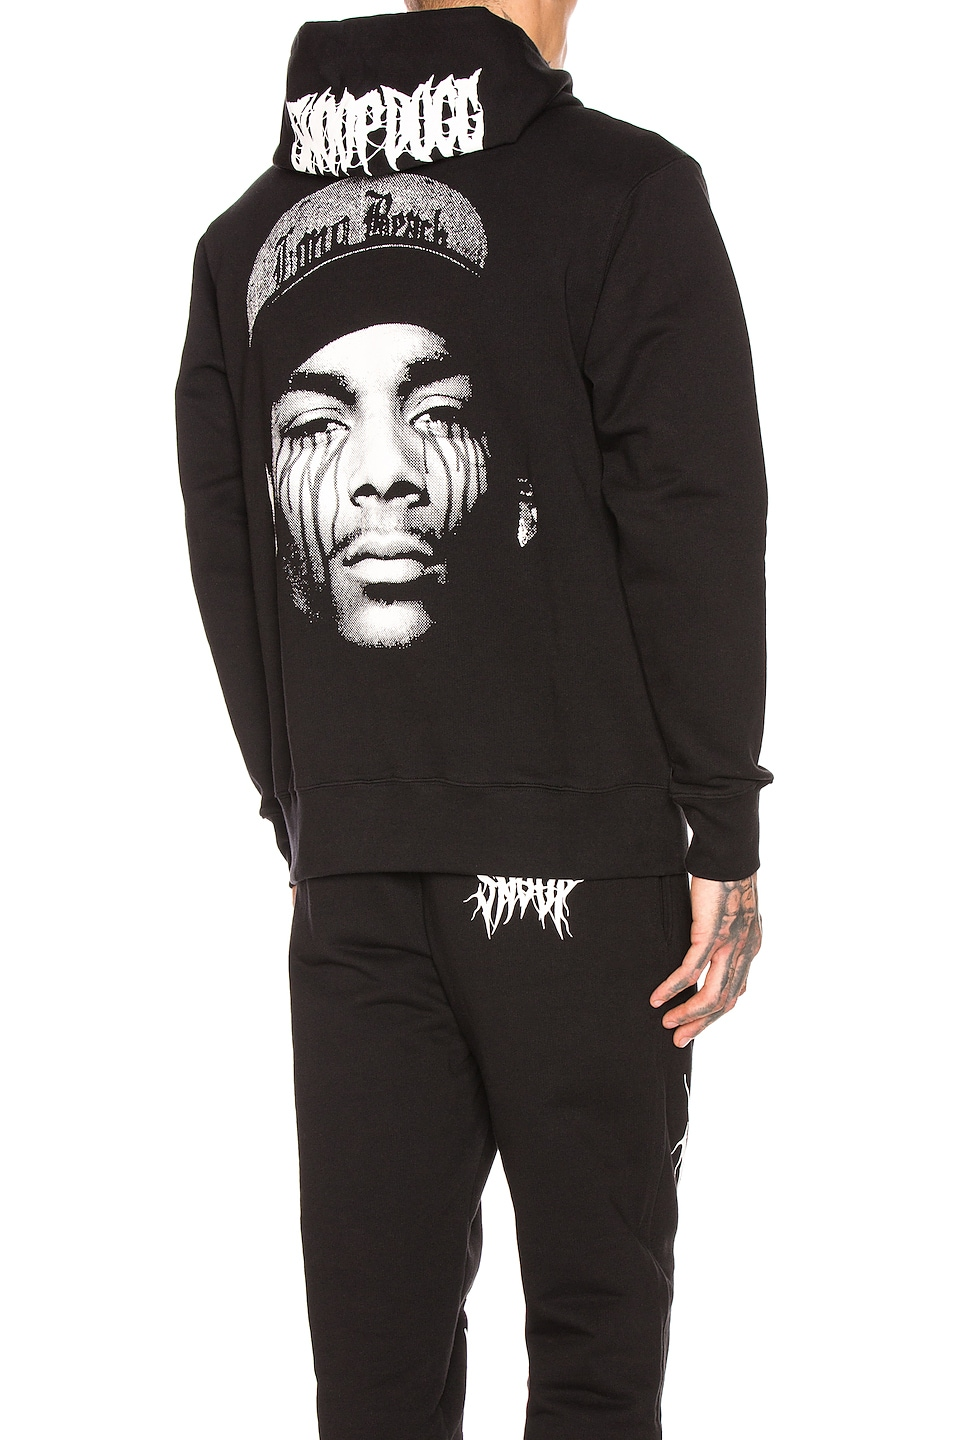 Sss World Corp Tops SSS WORLD CORP SSSNOOP TEARS HOODIE IN BLACK & WHITE